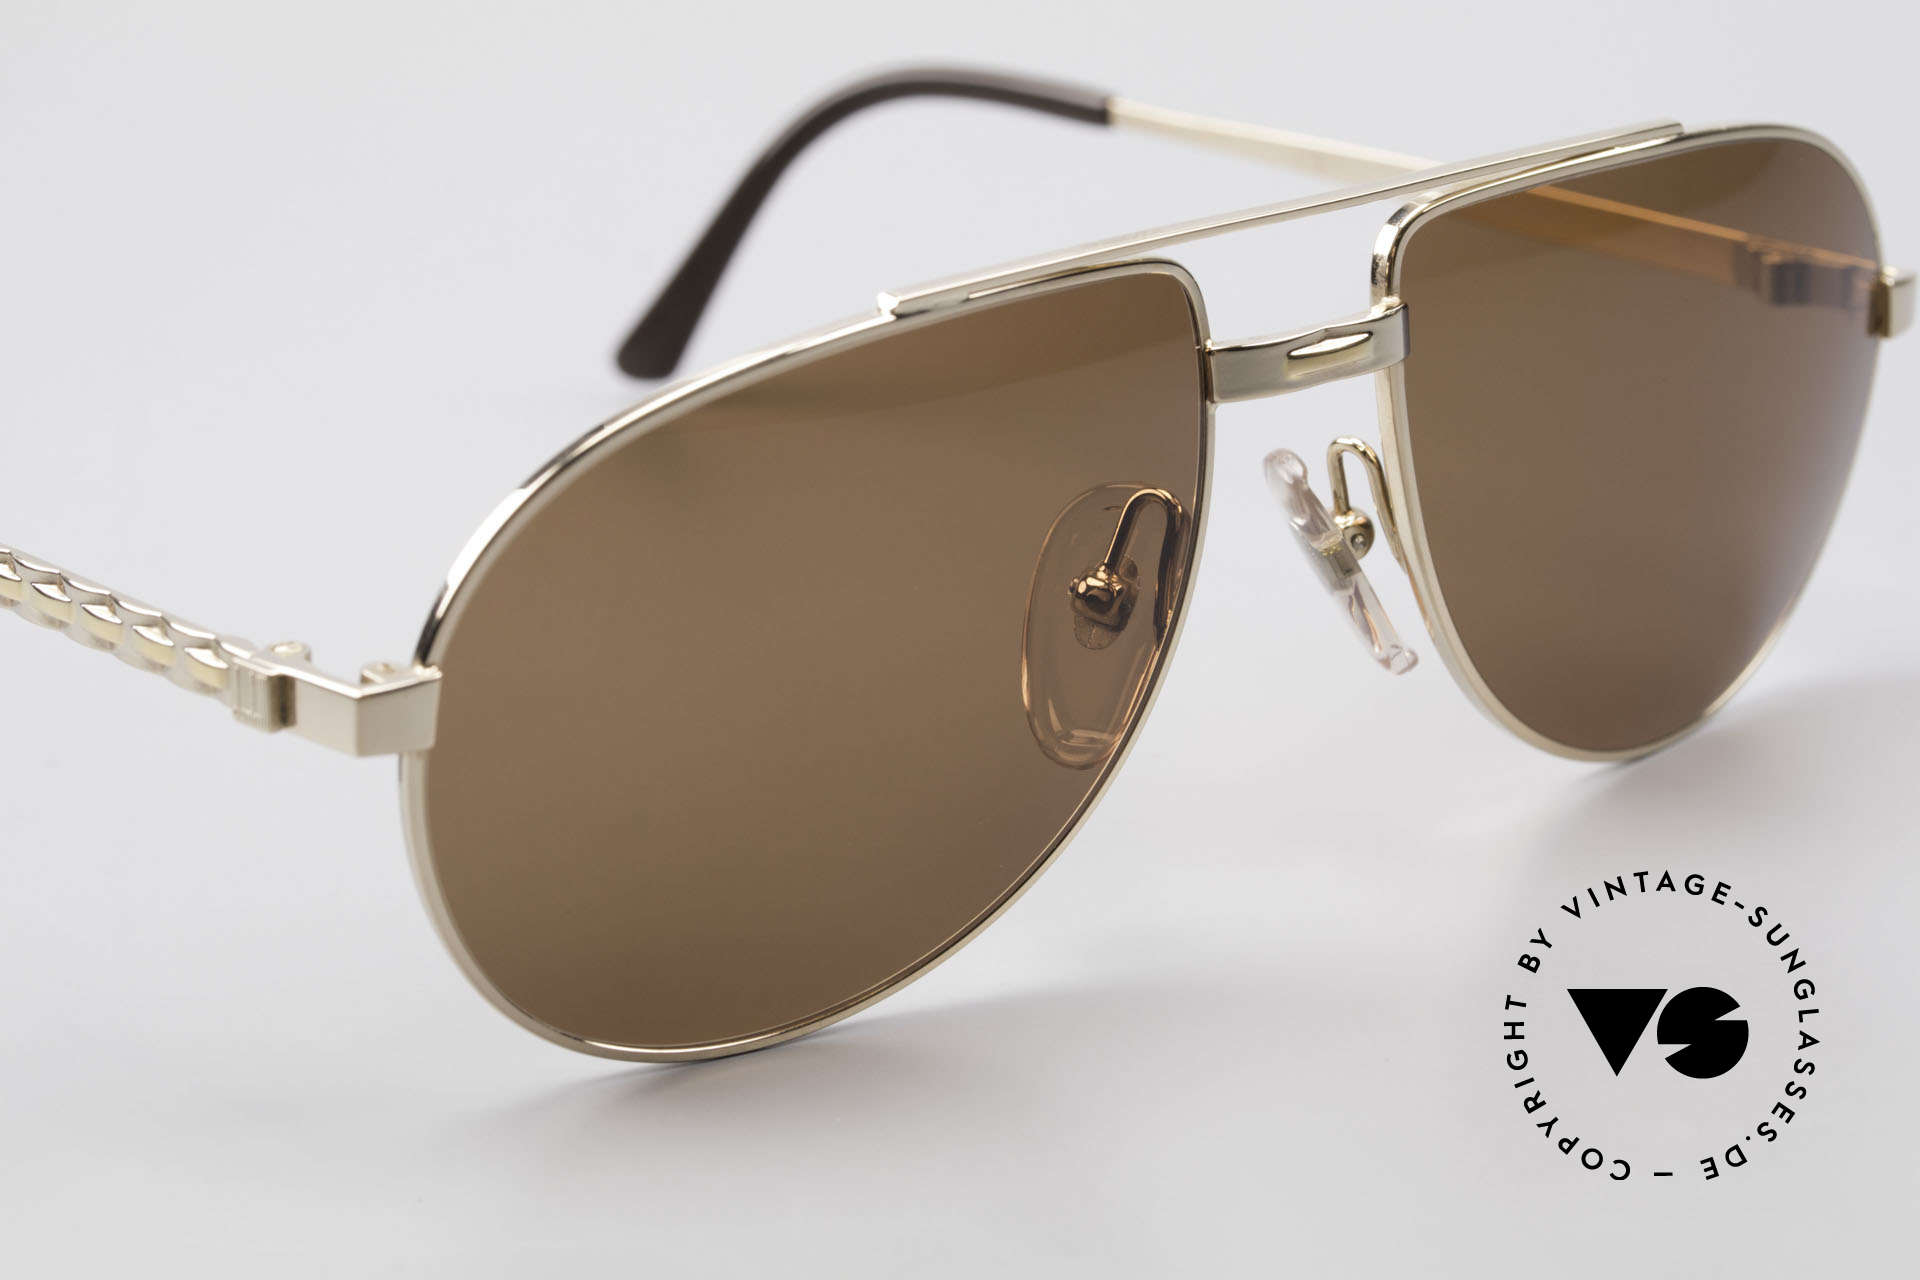 Dunhill 6147 90's Luxury Aviator Sunglasses, new old stock (like all our vintage luxury sunglases), Made for Men